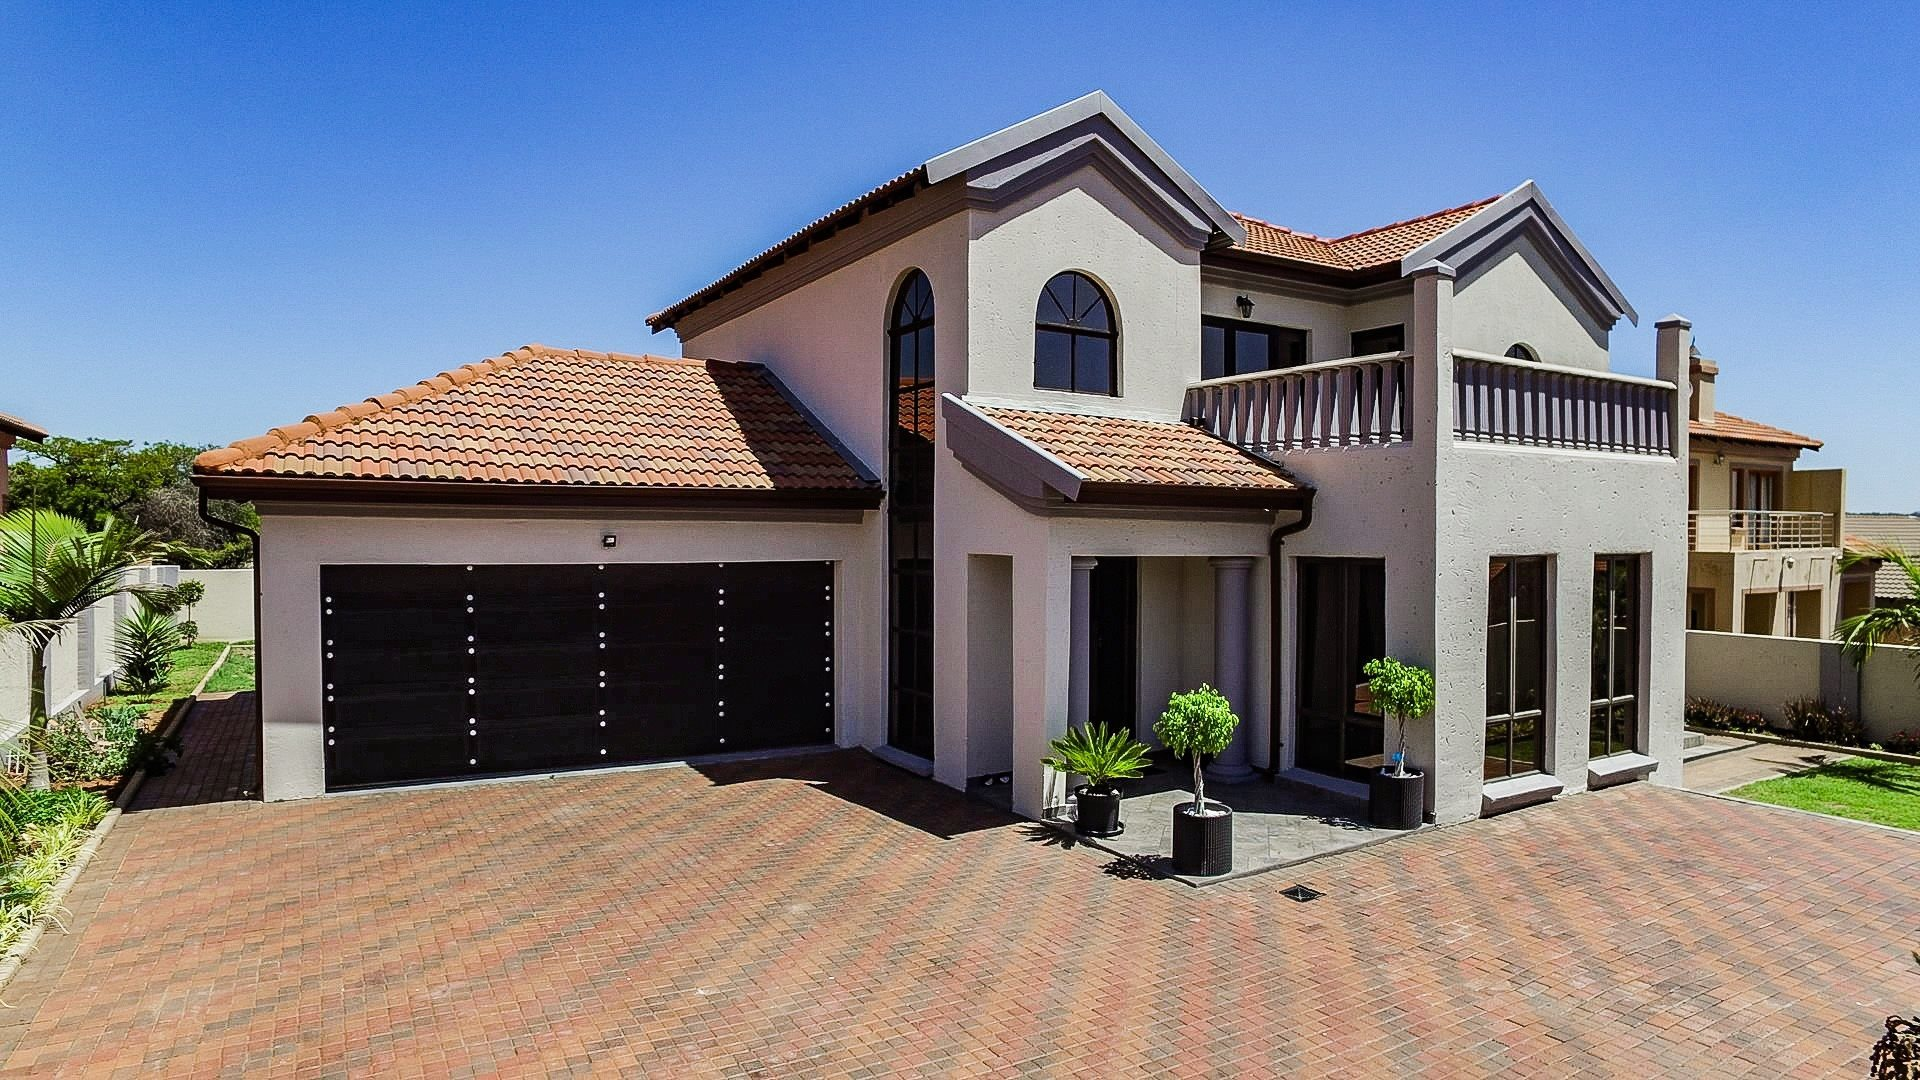 Centurion amberfield manor property houses for sale for Centurion homes